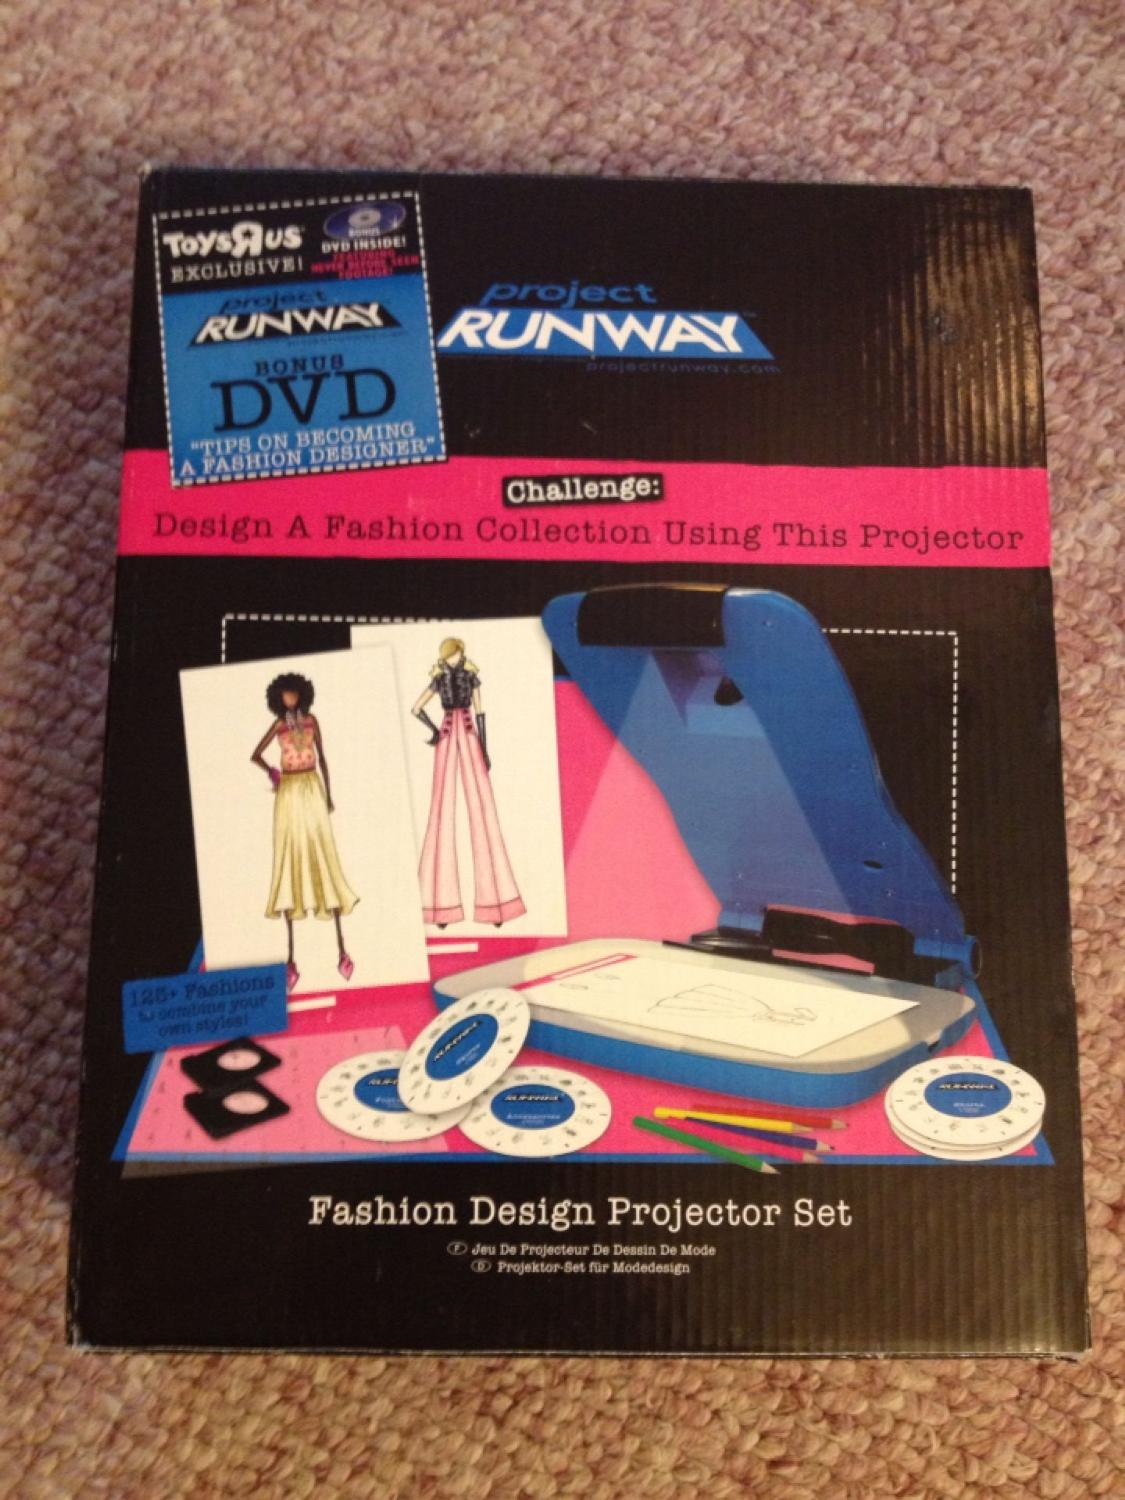 Find More Project Runway Fashion Design Projection Set For Sale At Up To 90 Off